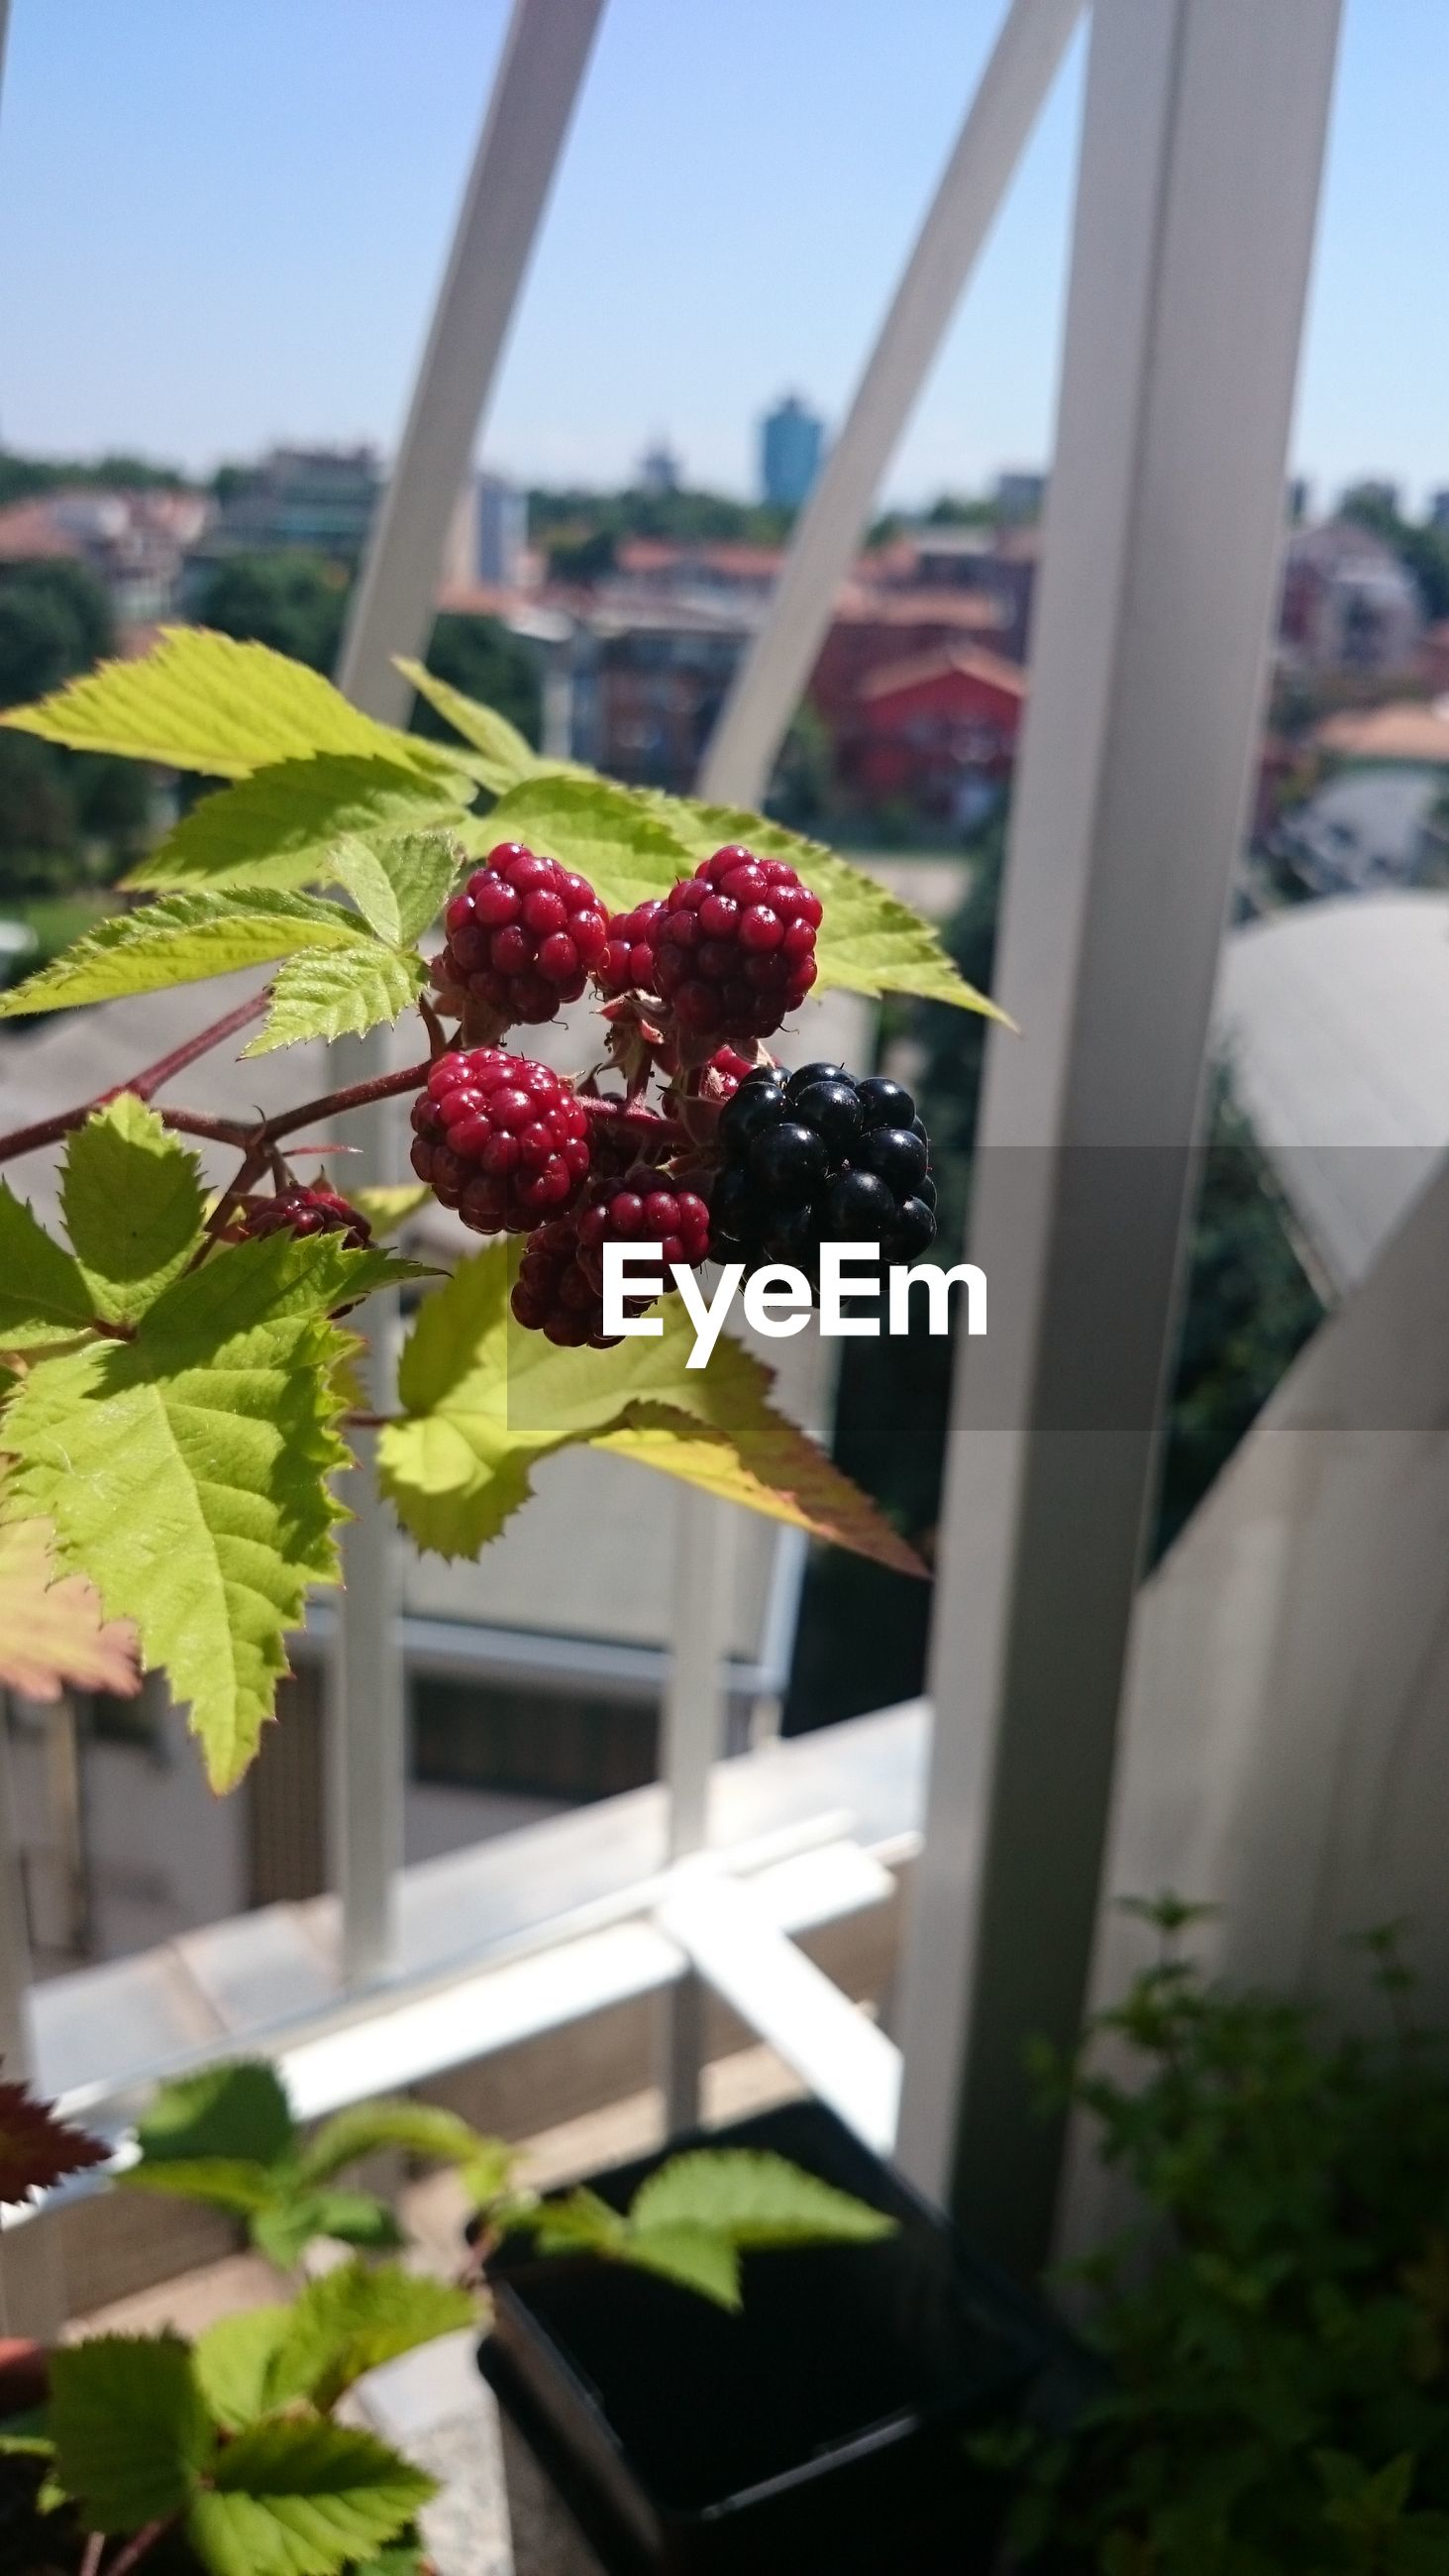 fruit, focus on foreground, freshness, healthy eating, no people, berry fruit, growth, close-up, food and drink, day, nature, tree, plant, outdoors, food, sky